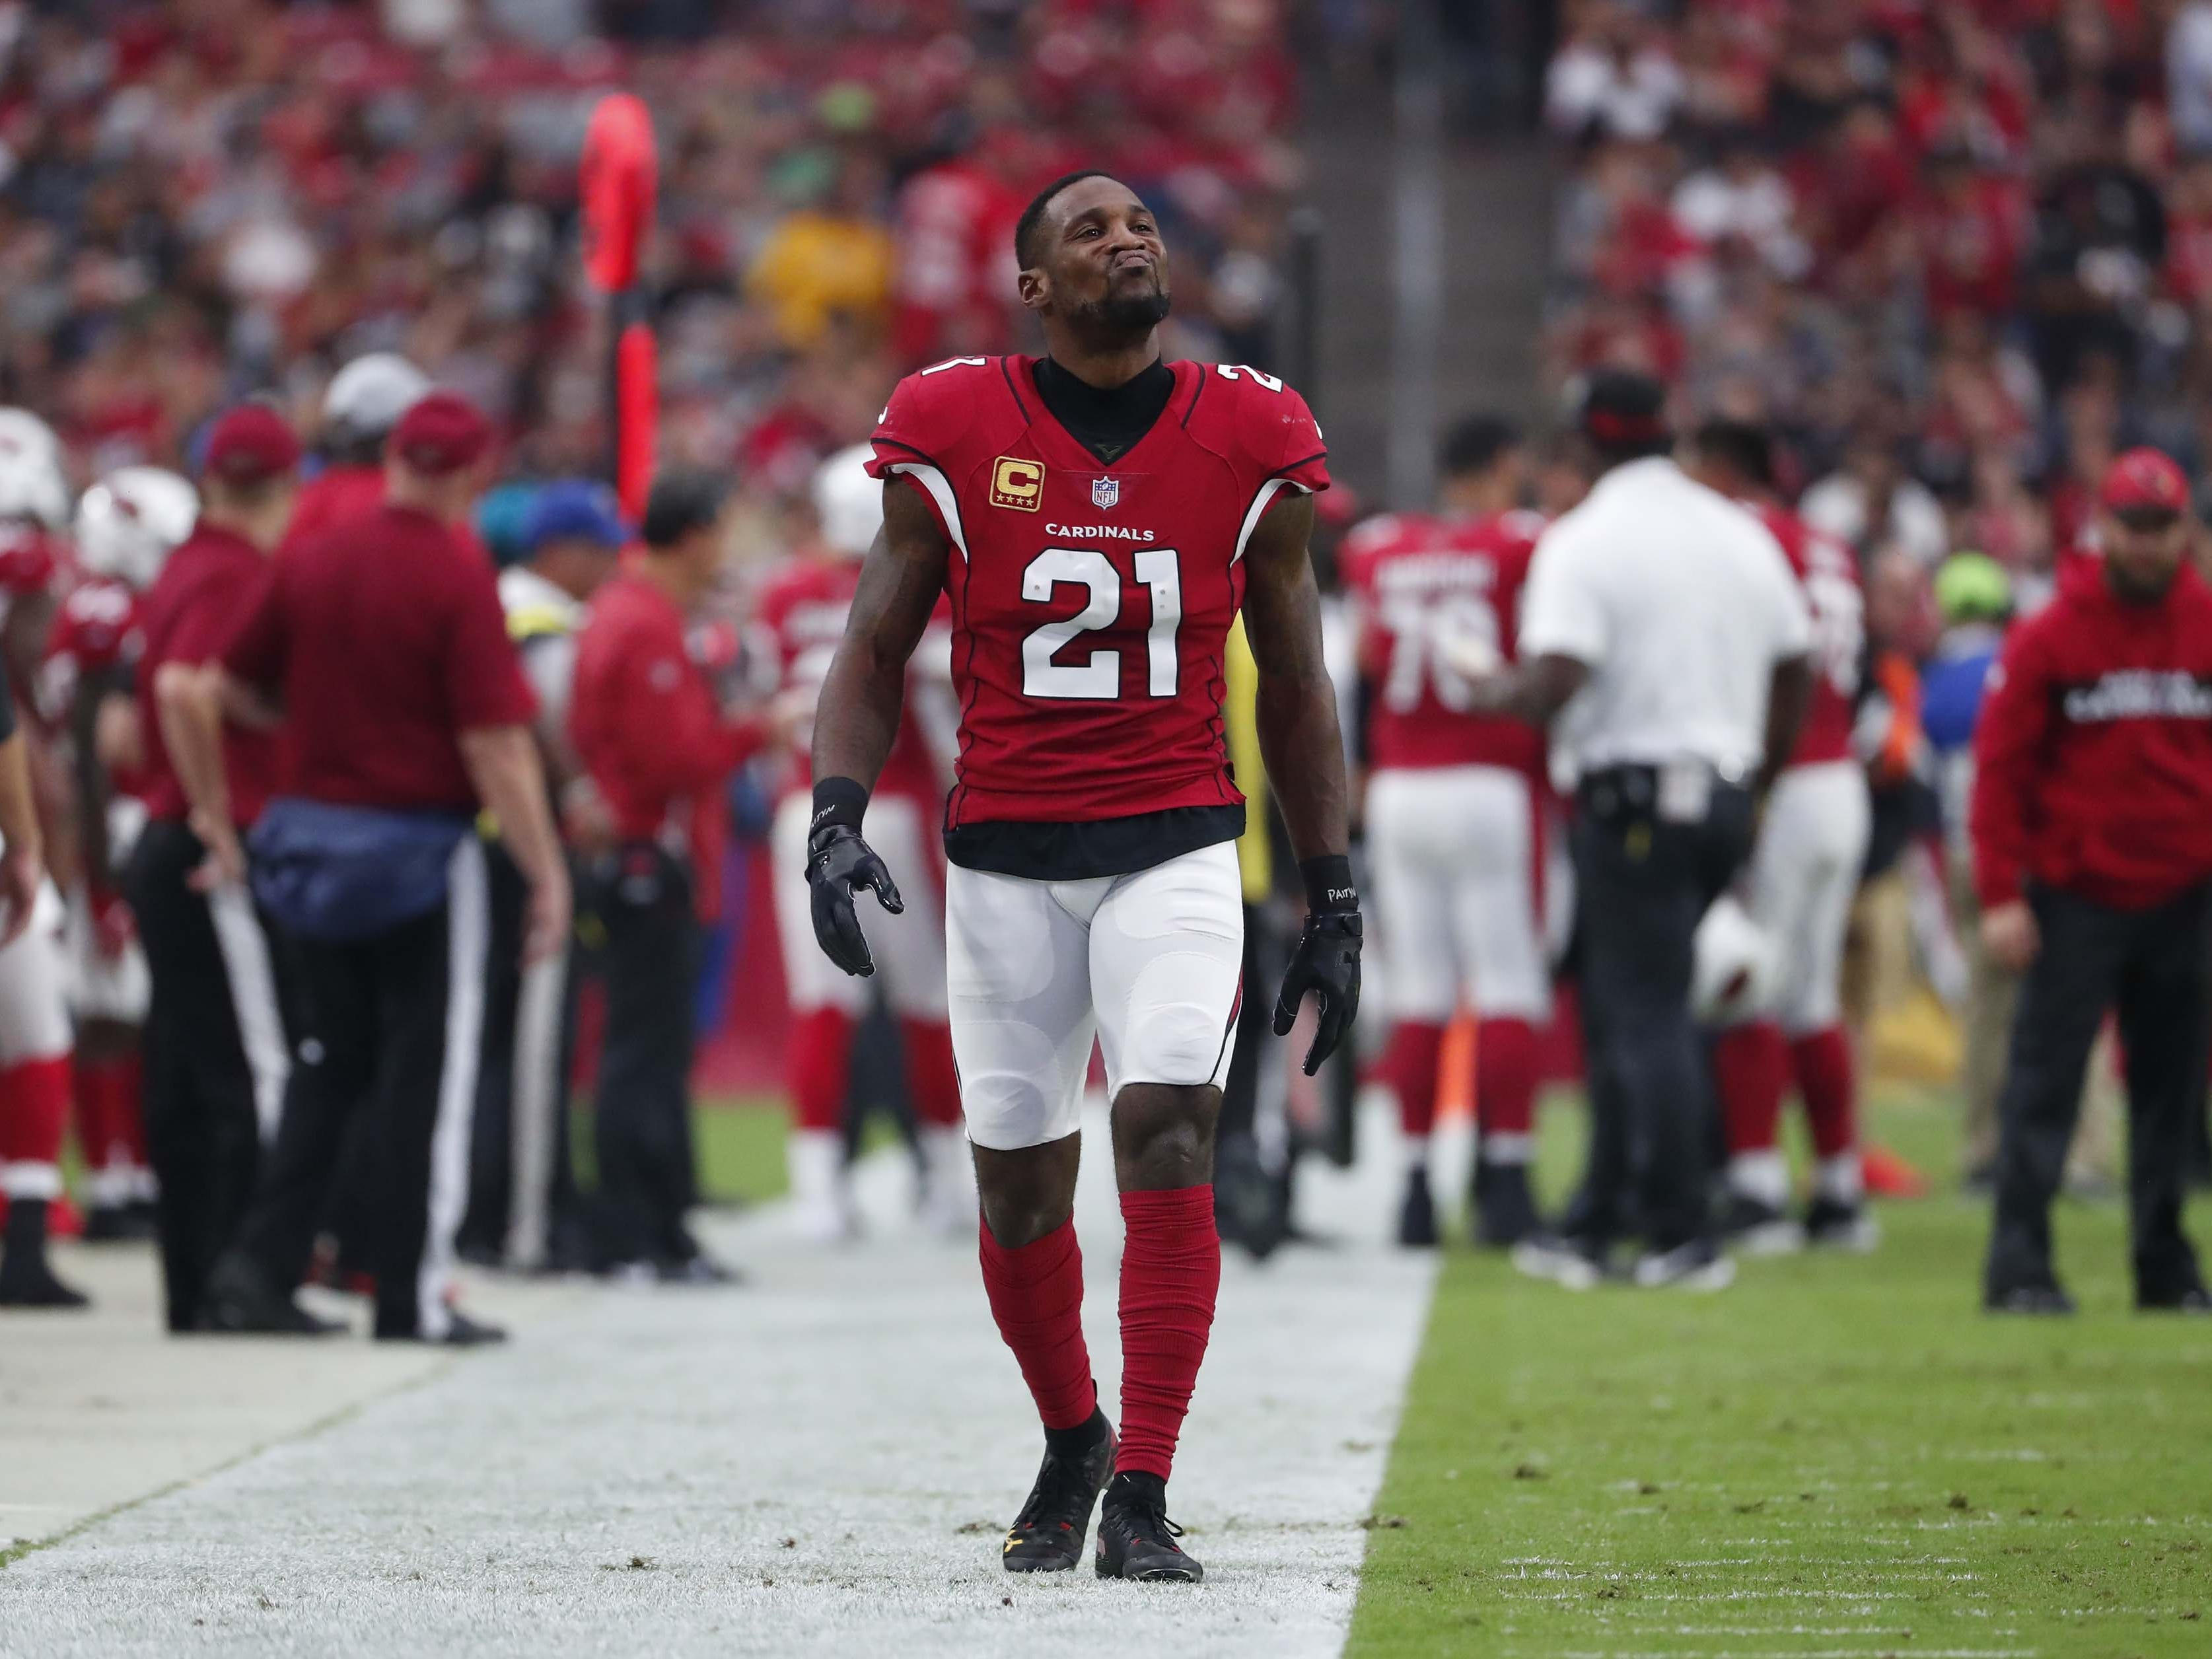 Arizona Cardinals cornerback Patrick Peterson (21) walks on the sidelines dung a break against the San Francisco 49ers during NFL action against the San Francisco 49ers on Oct. 28 at State Farm Stadium.